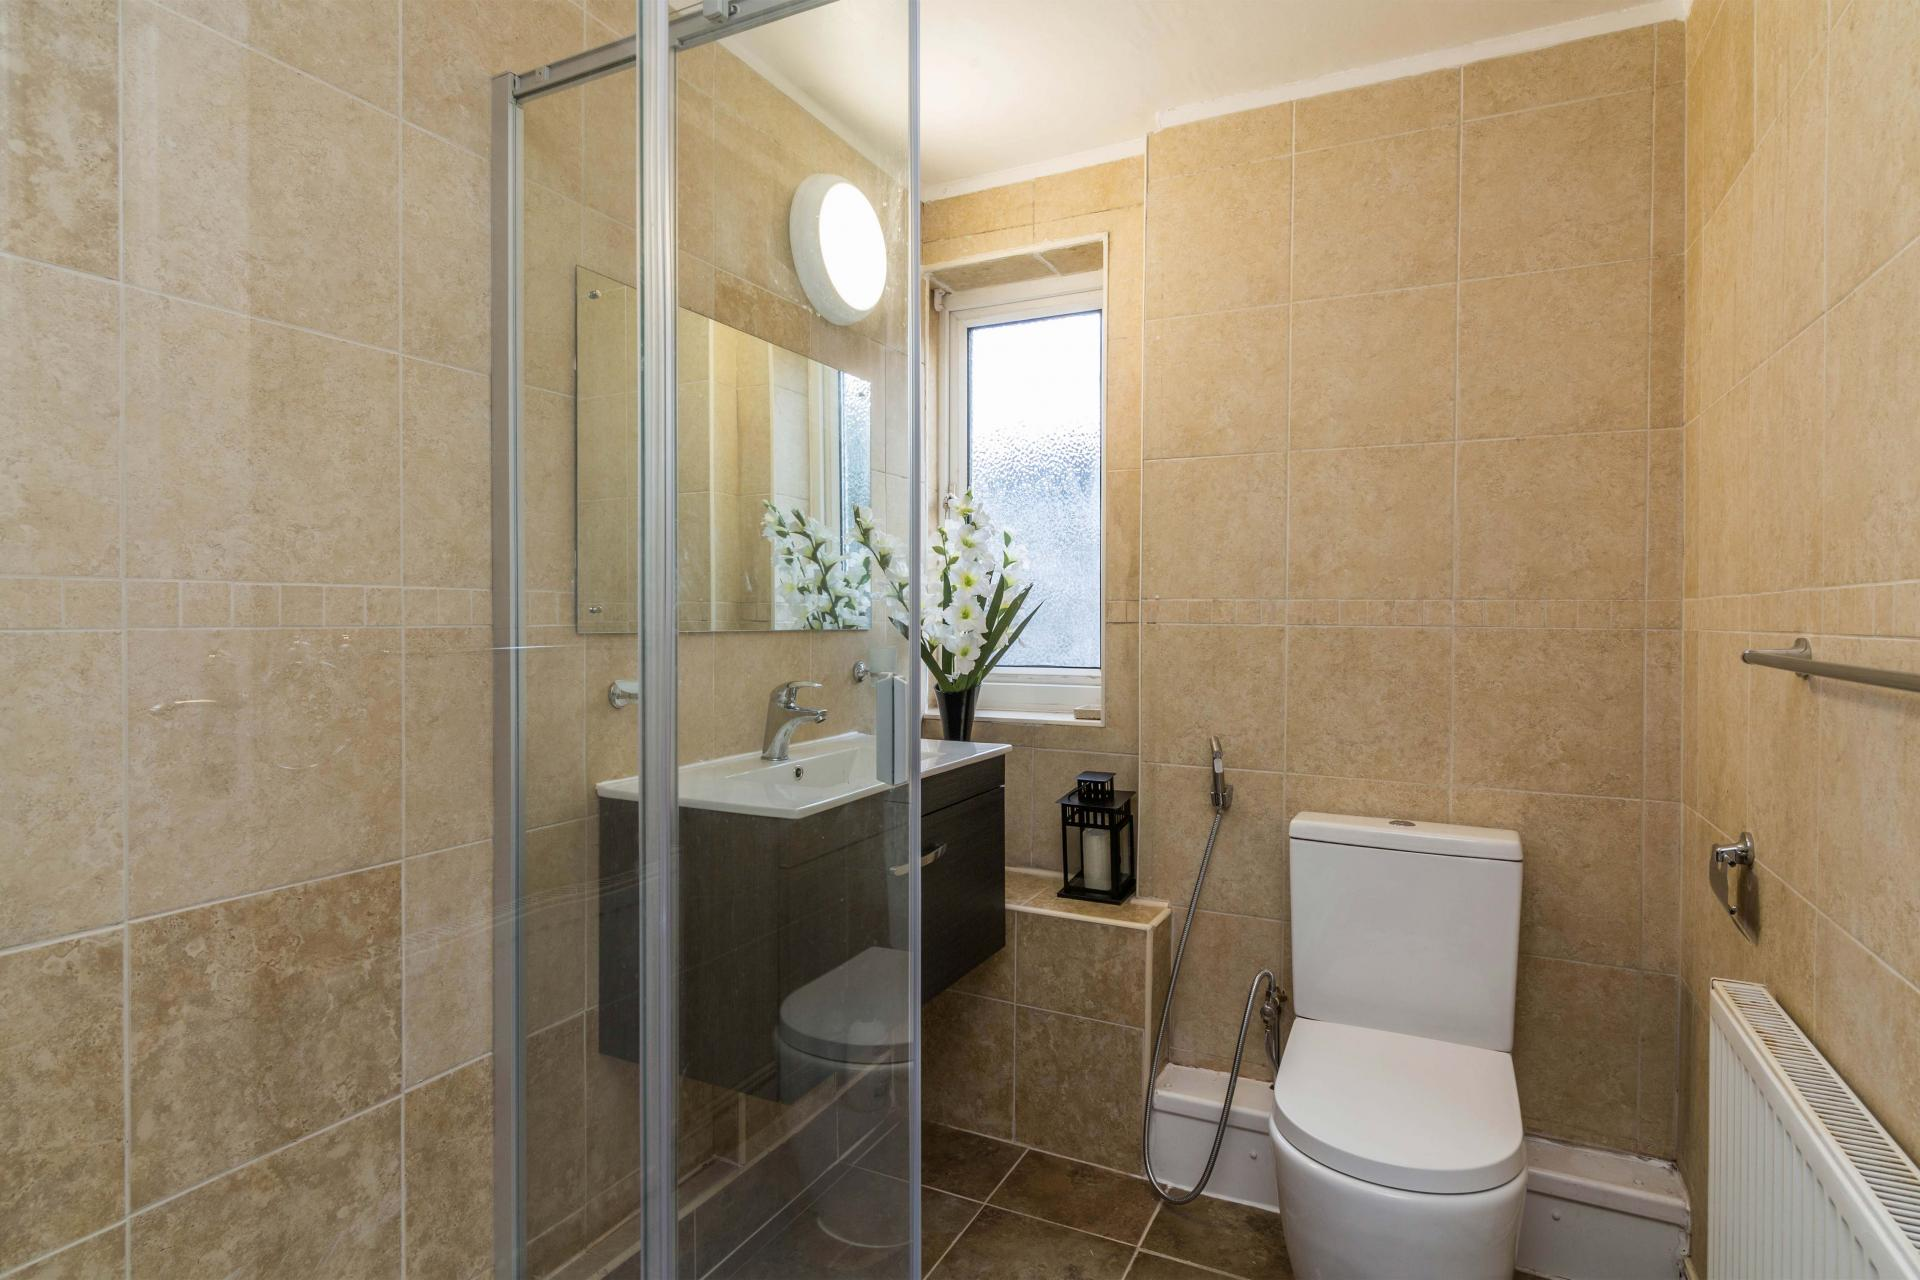 Shower at Redcliffe Apartment, Mapperley Park, Nottingham - Citybase Apartments